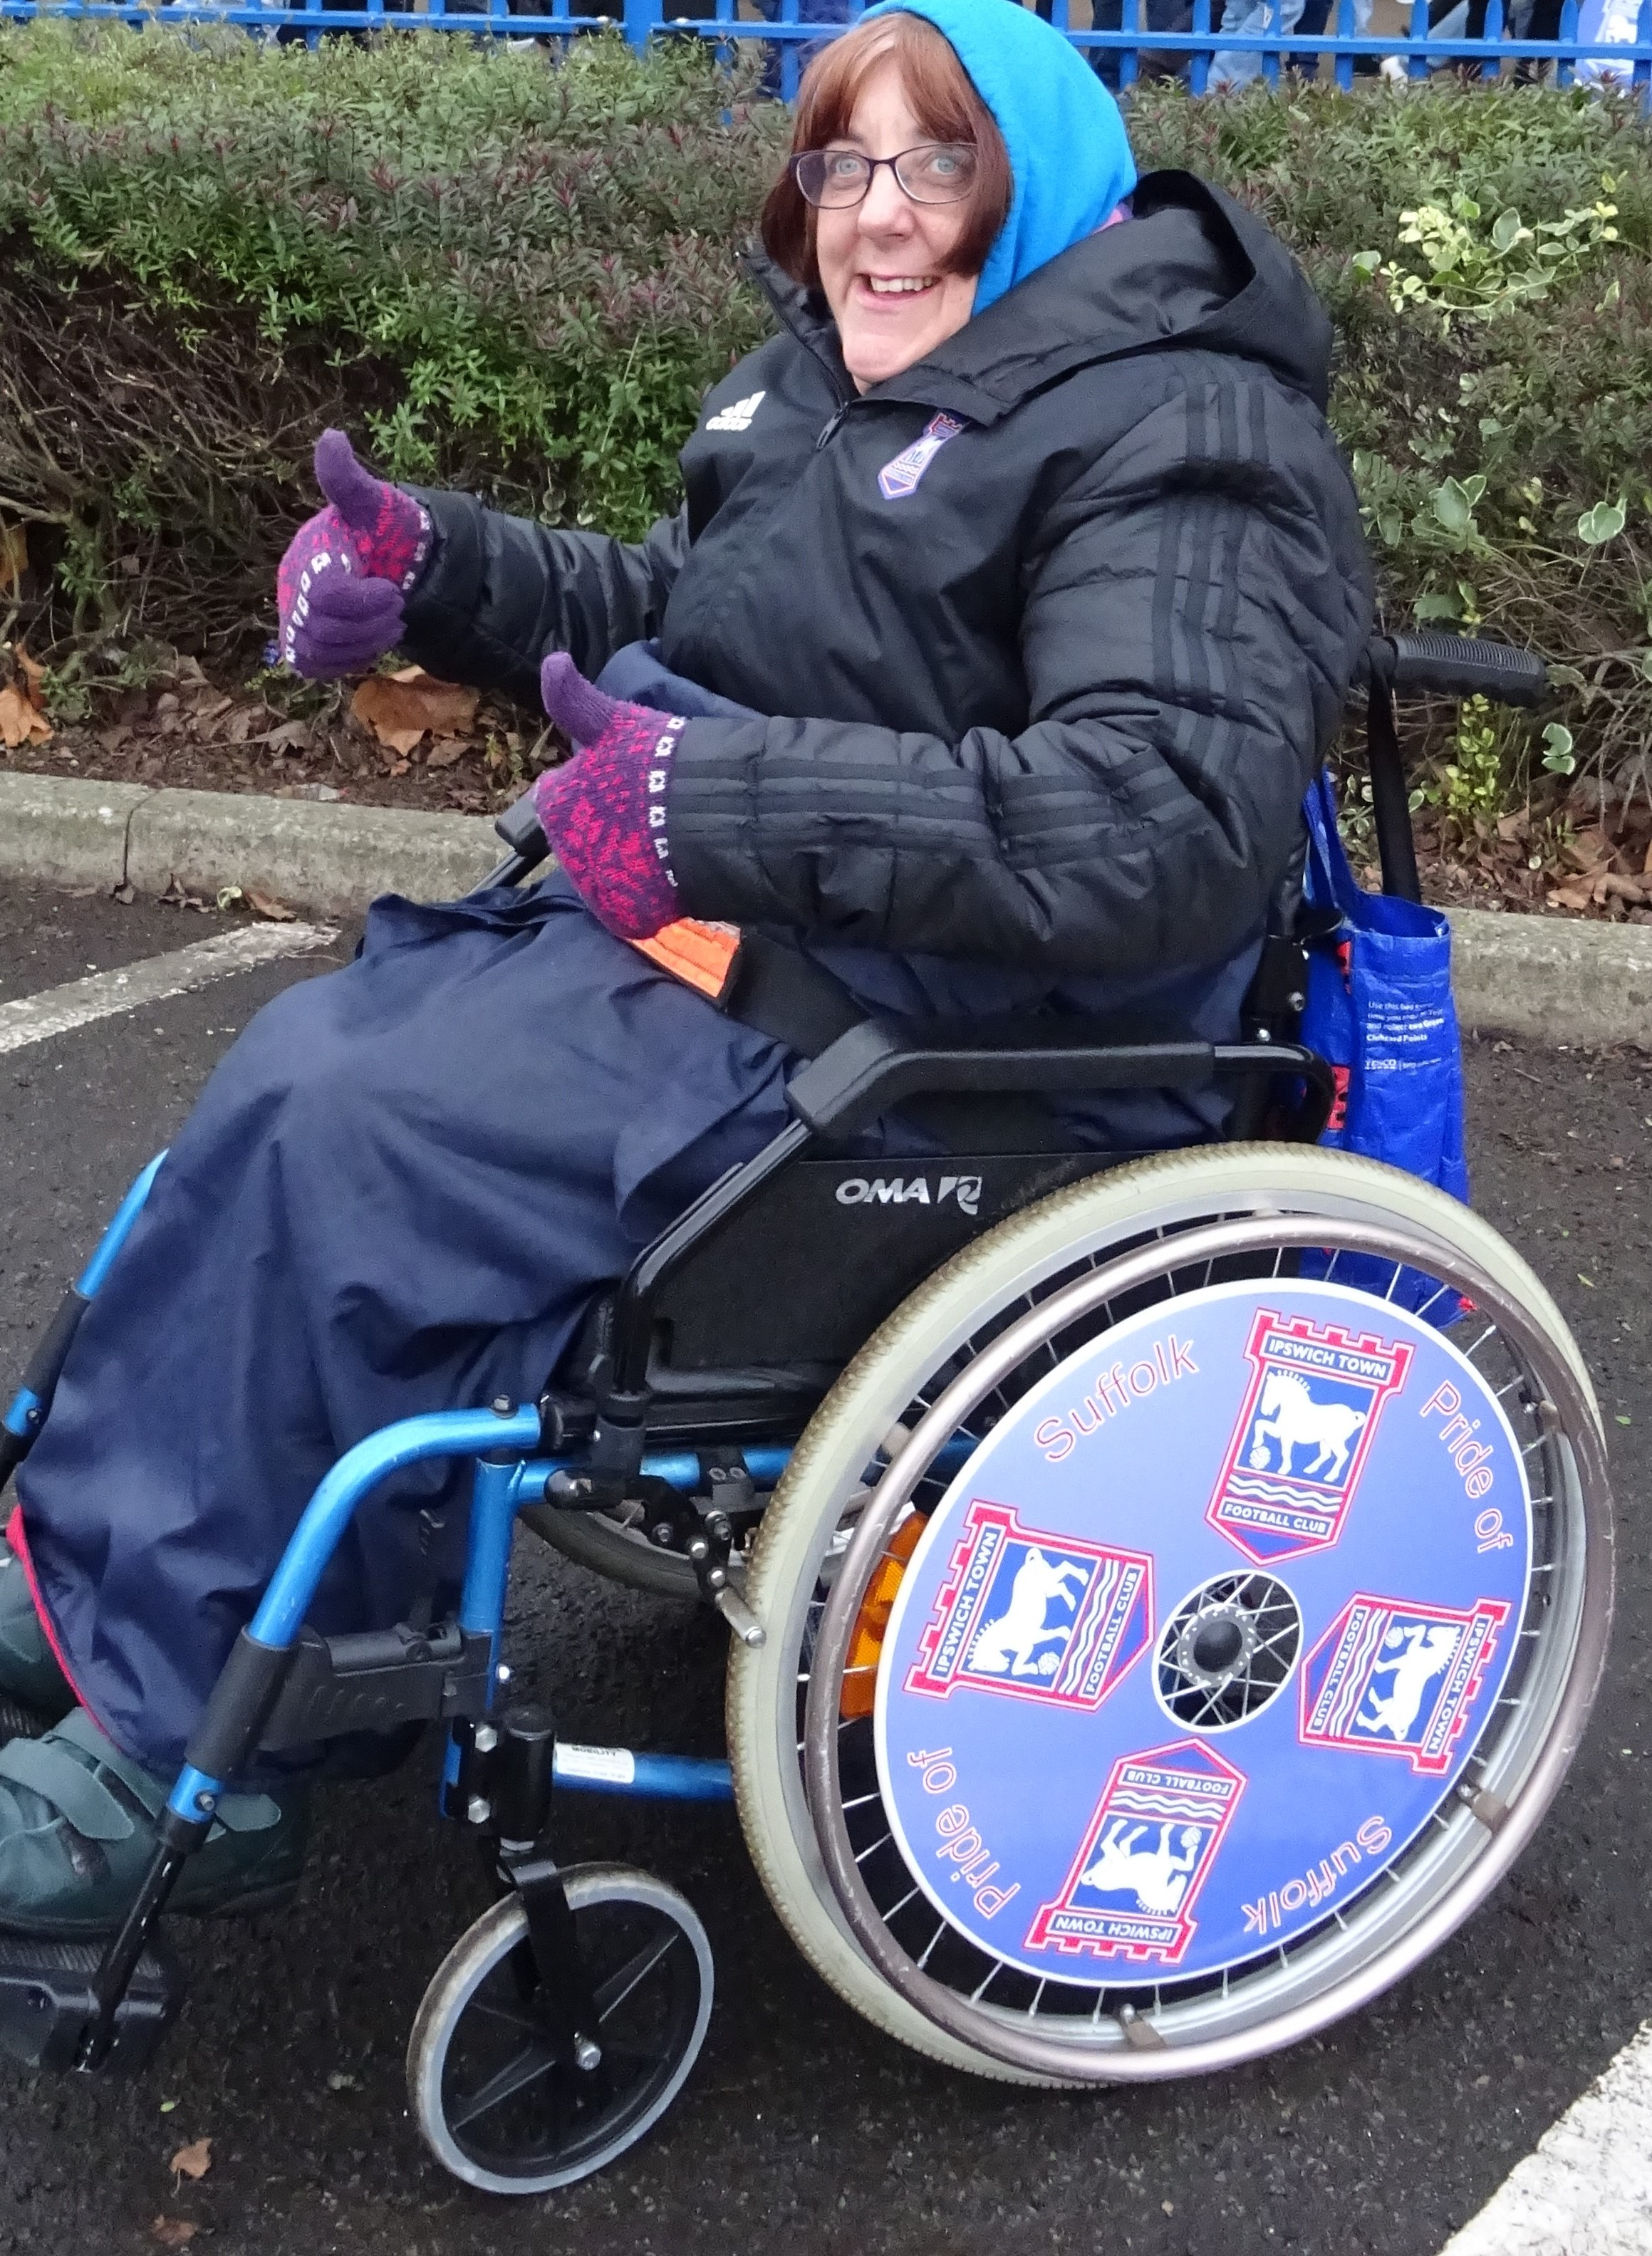 Louise with Ipswich Town SpokeGuards wheel covers